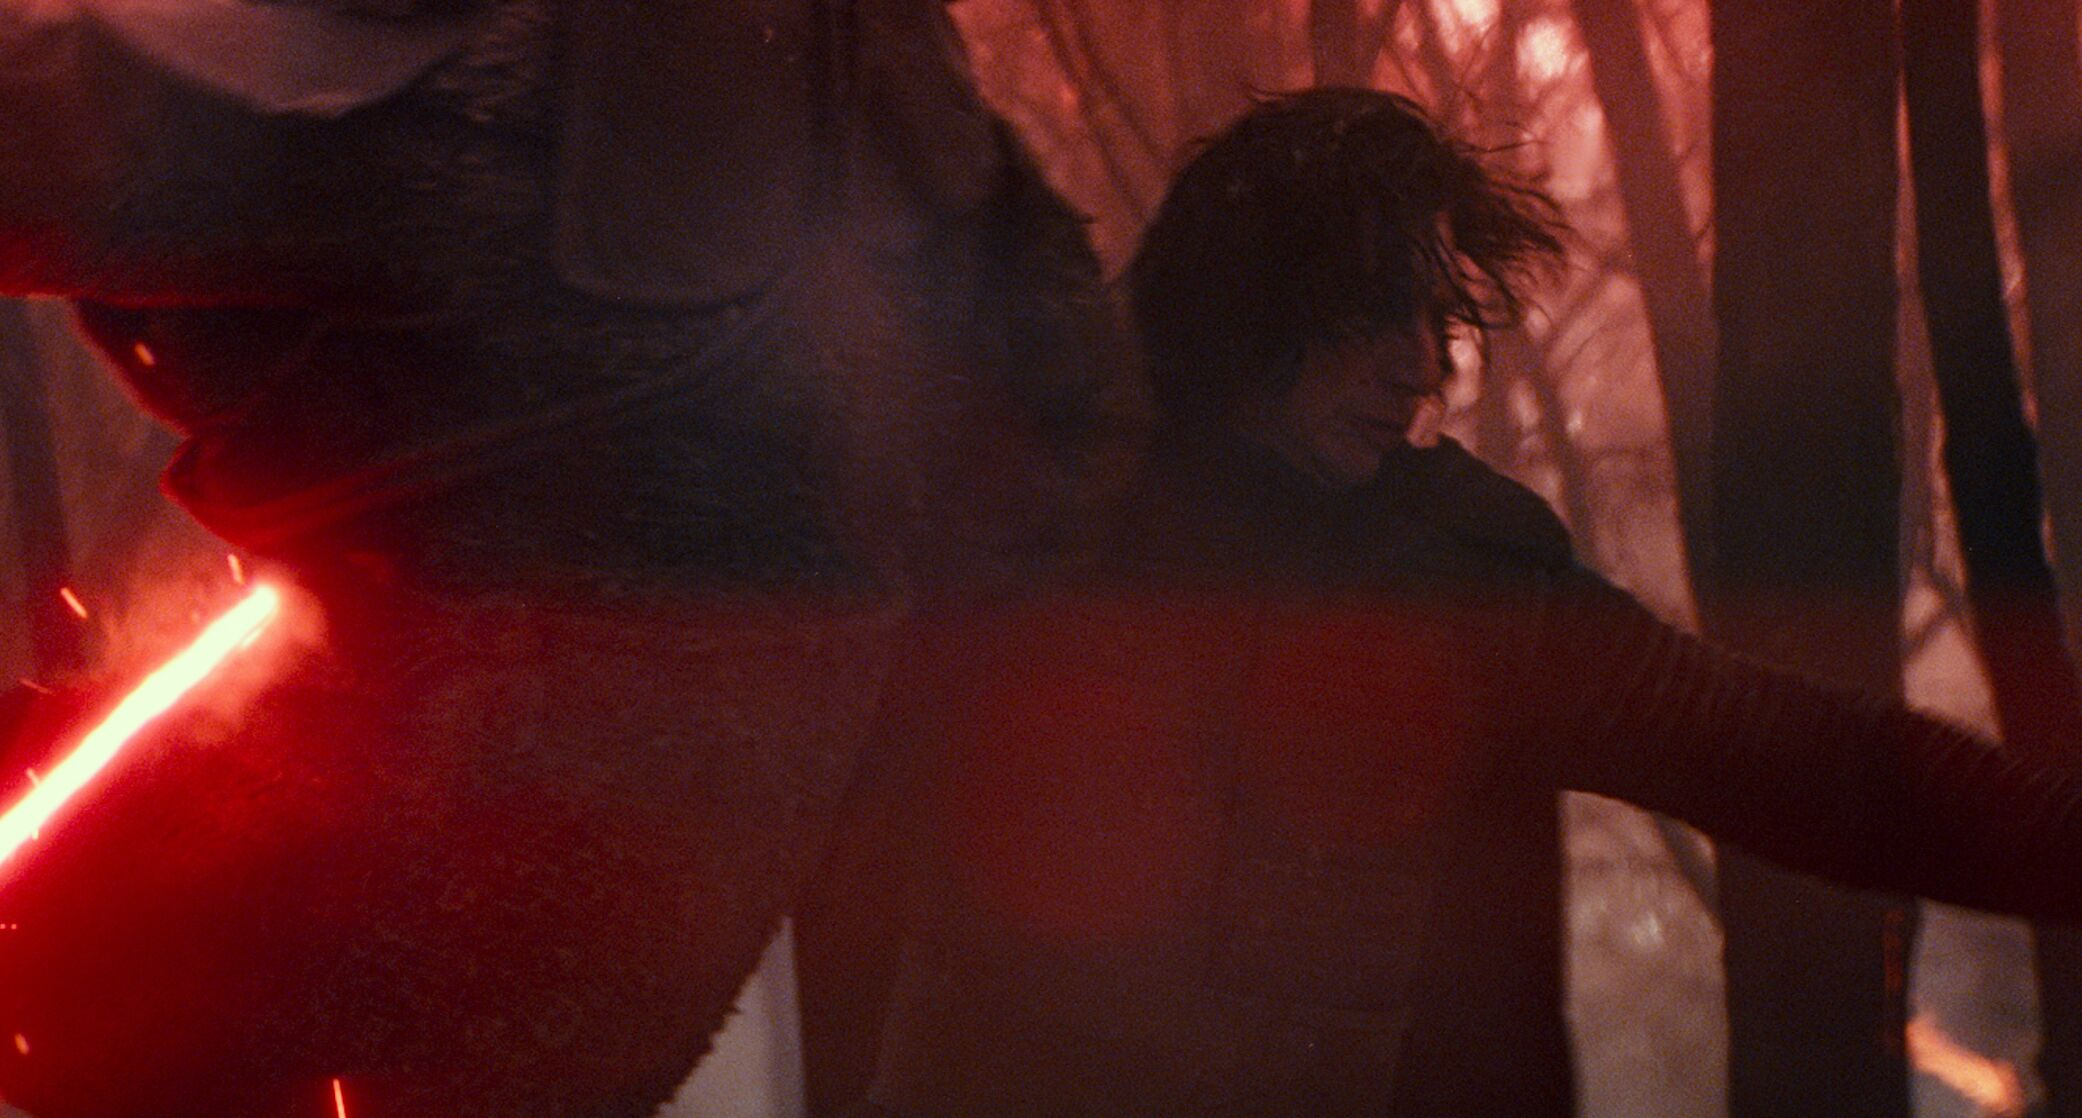 The Knights of Ren are confirmed to appear in Star Wars: The Rise of Skywalker